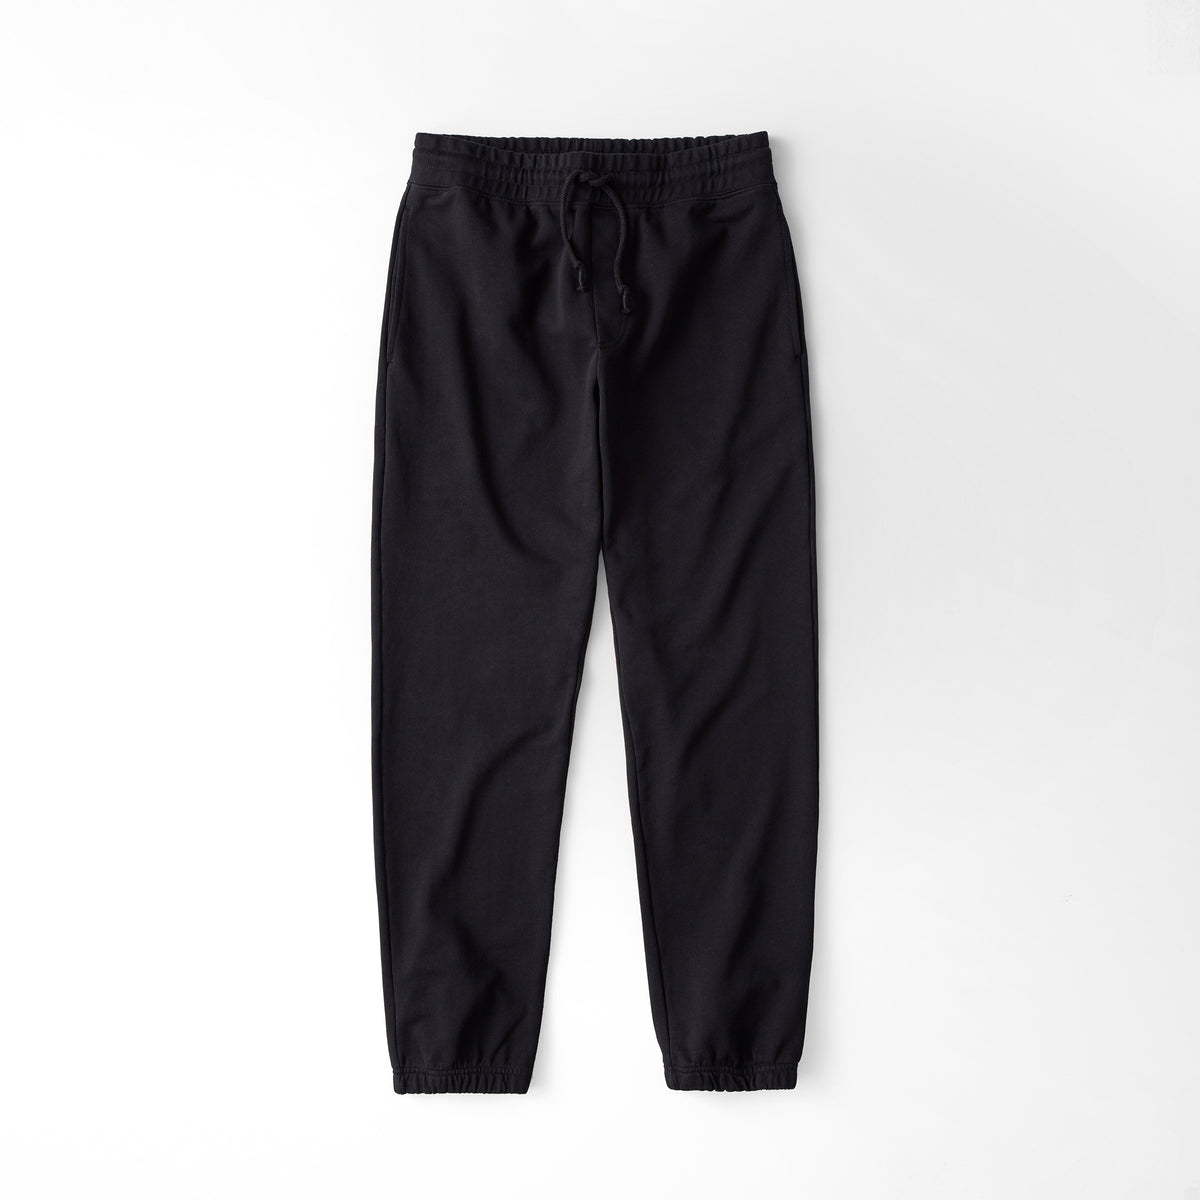 Sweatpant Black